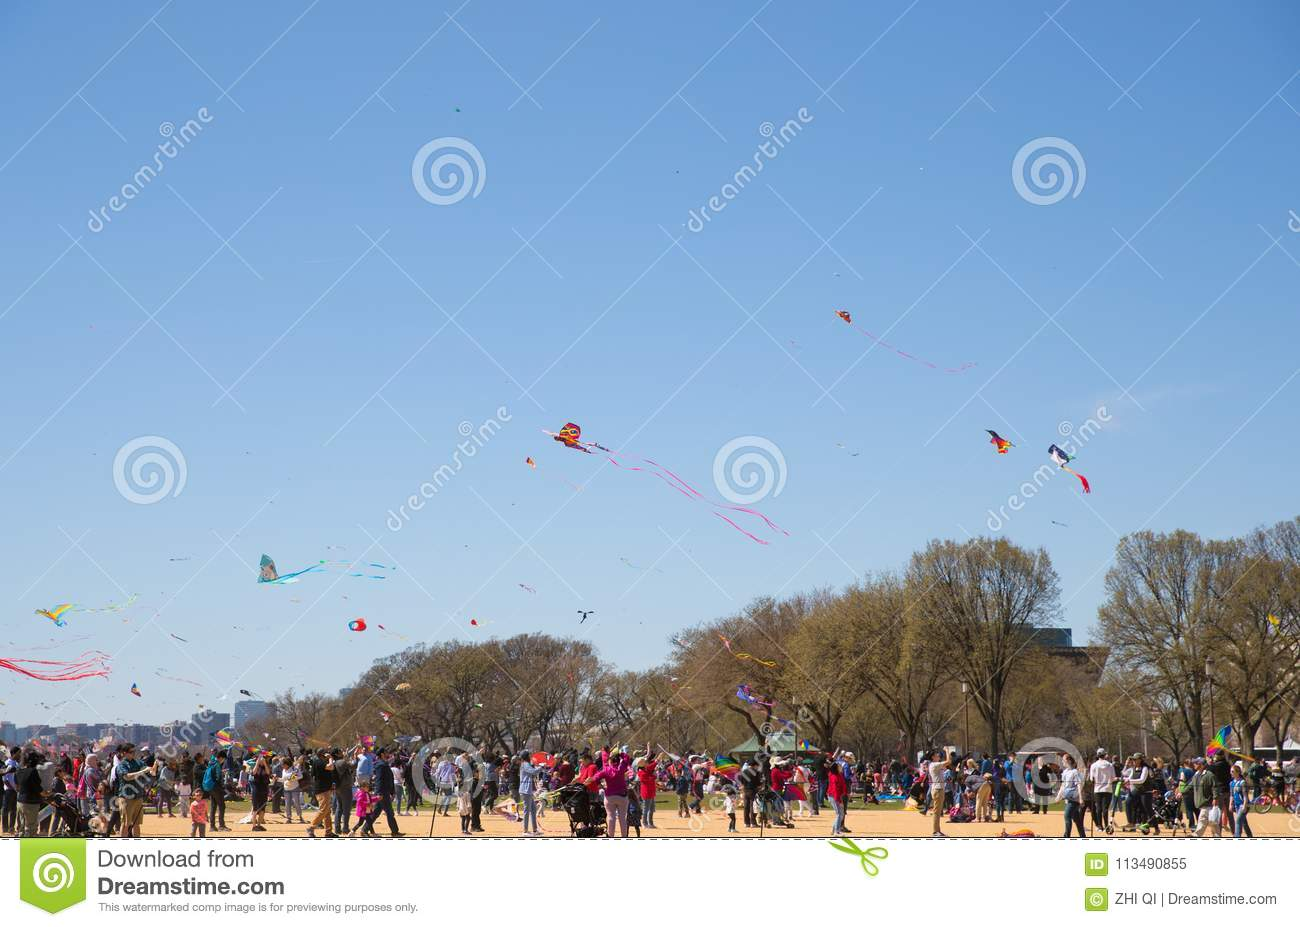 A Large Crowd Of Adults And Children Flying Kites At The